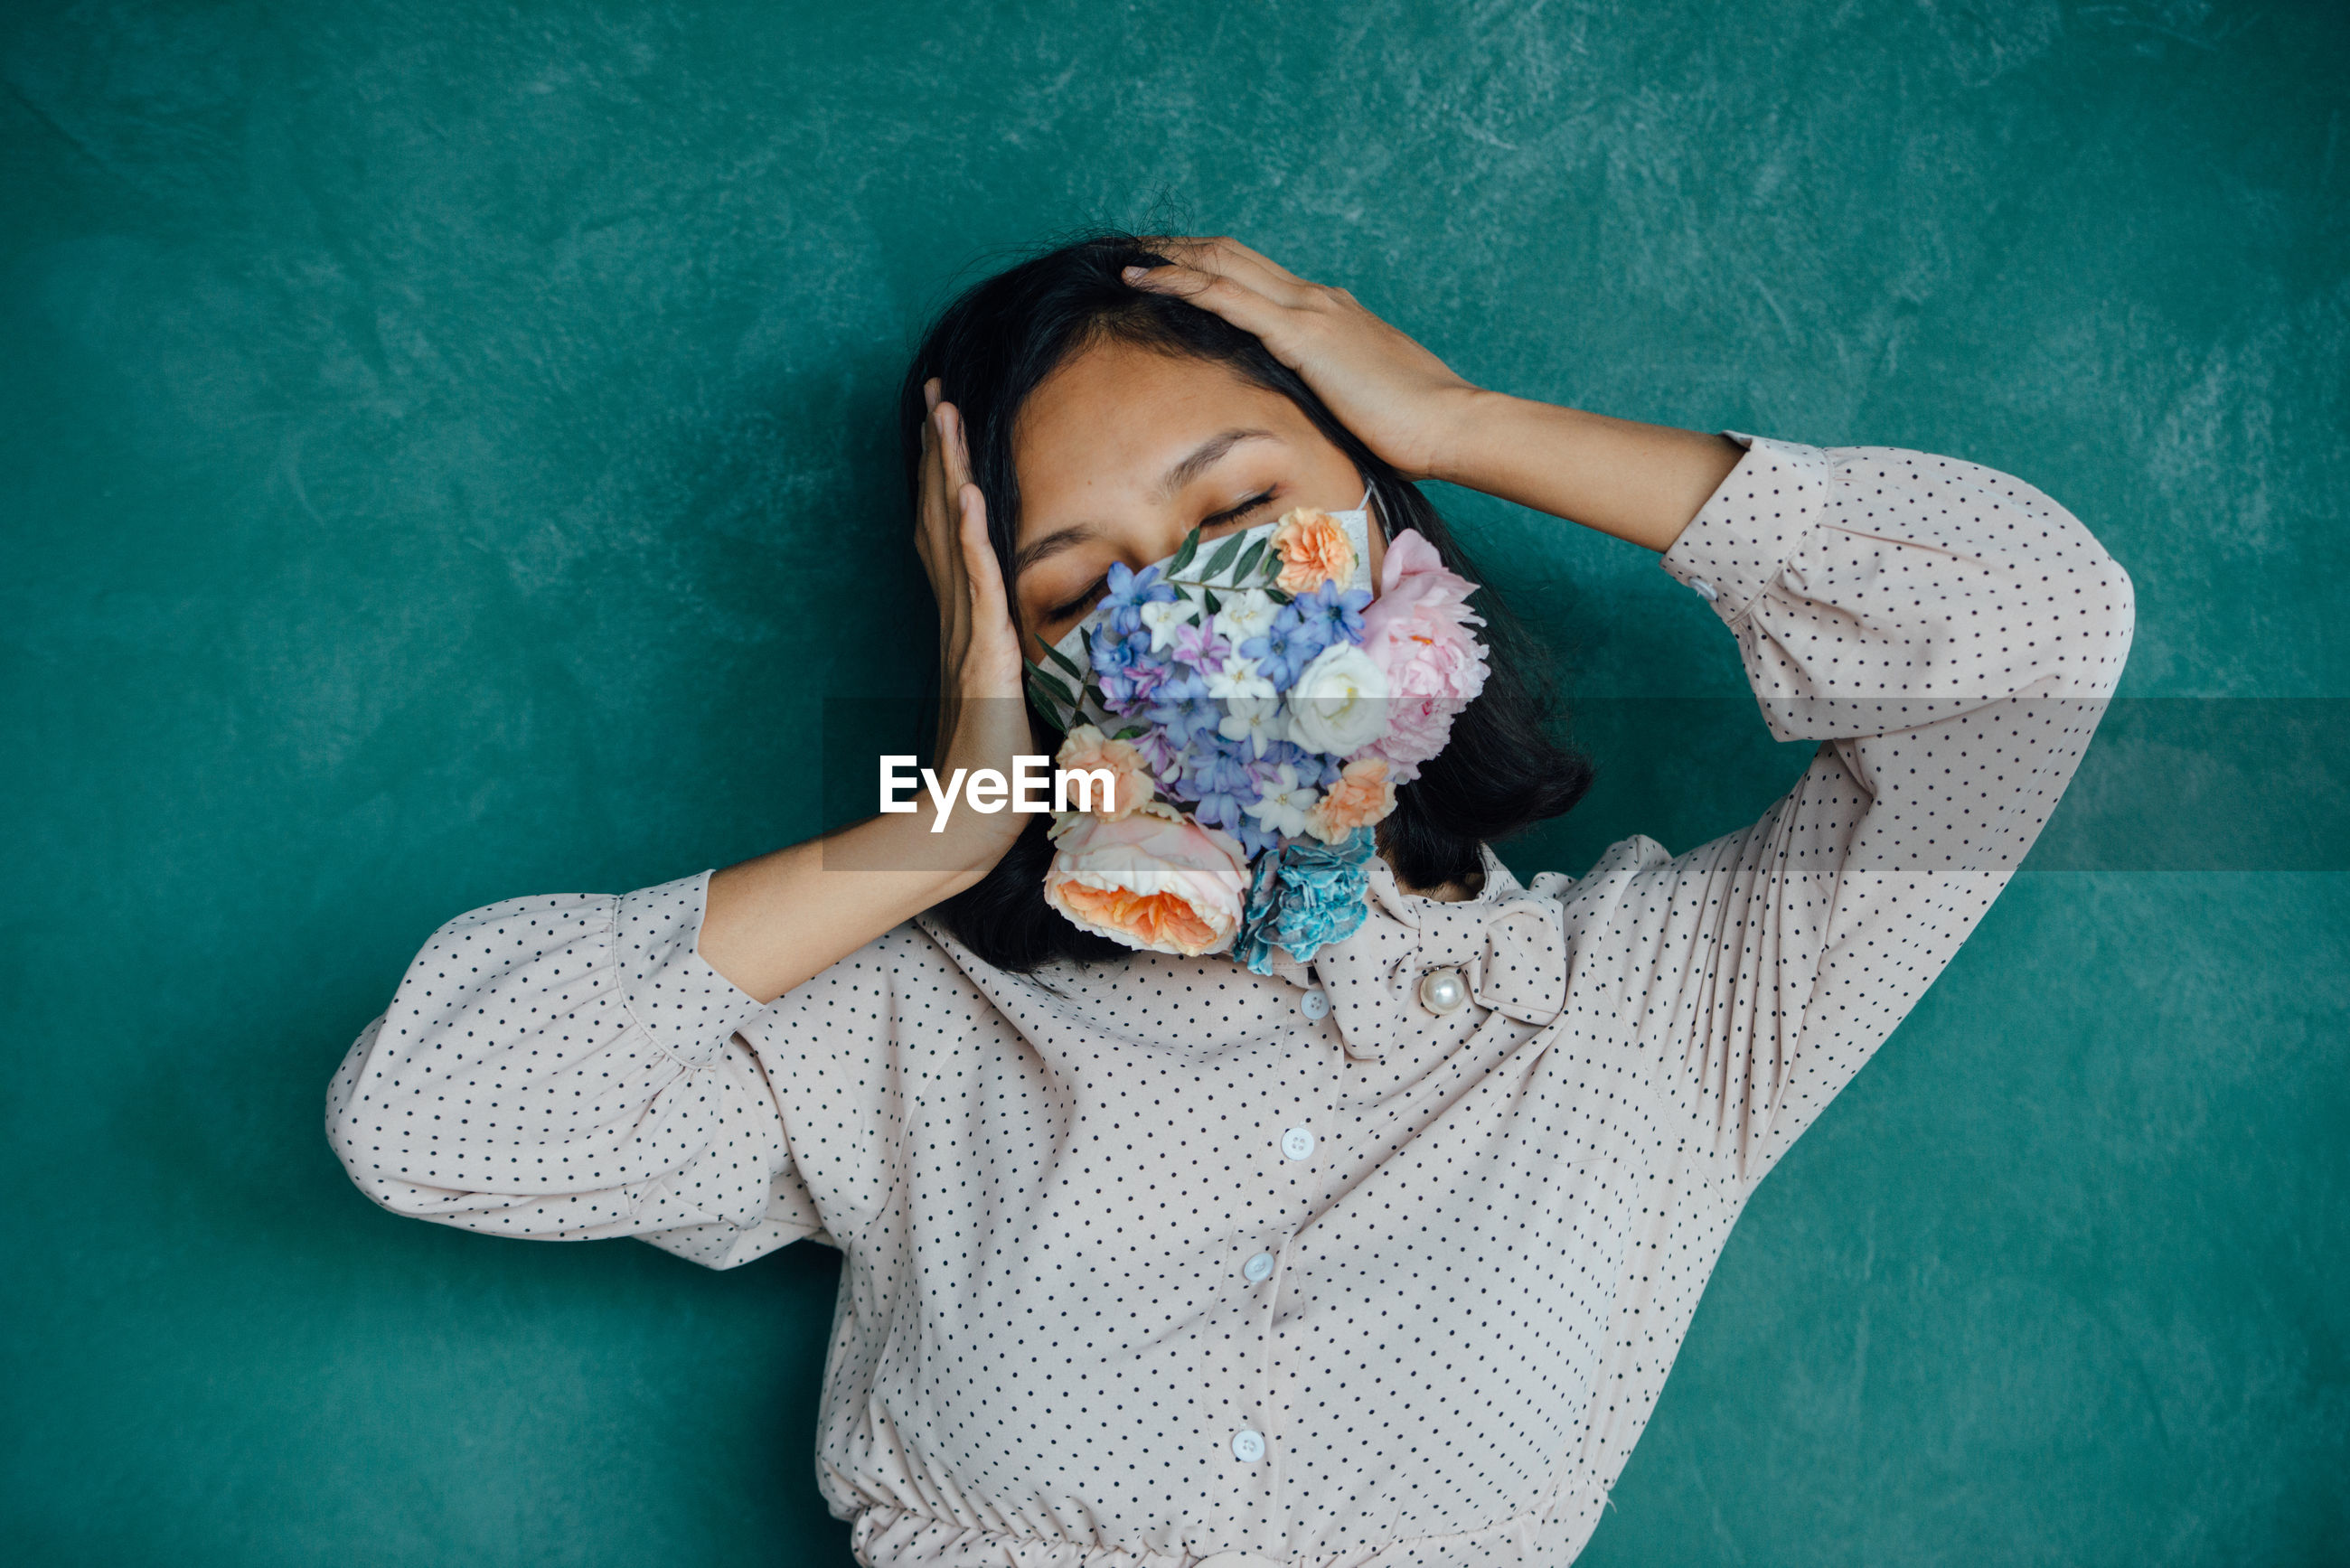 Woman covering mouth with flowers against blue wall